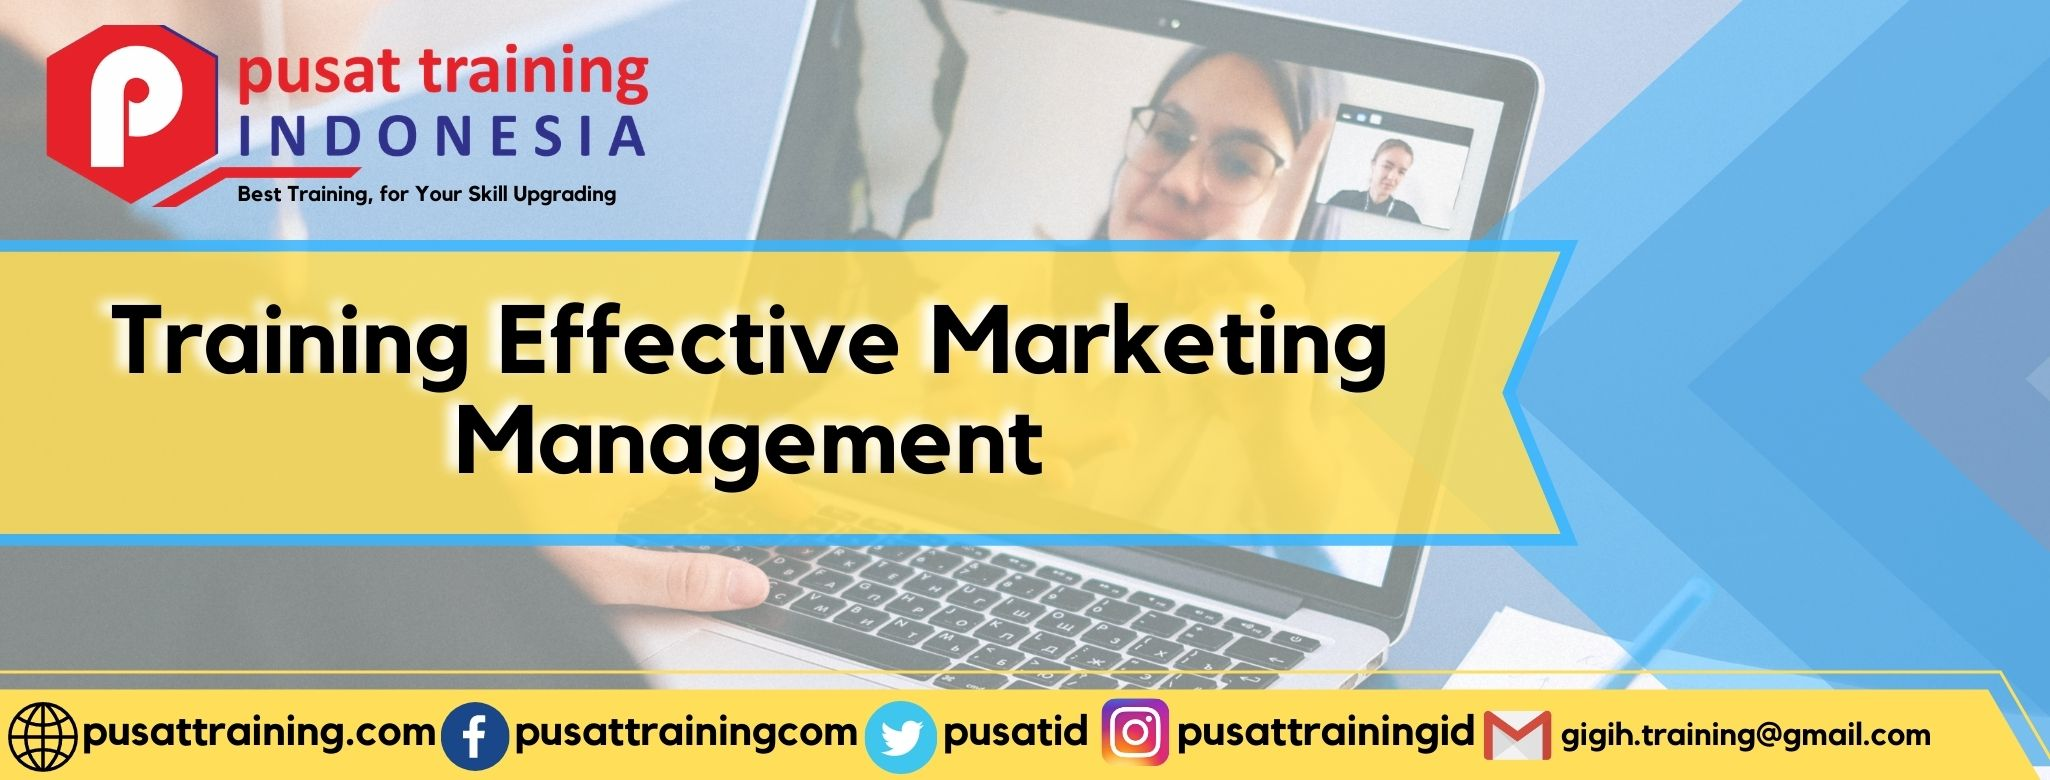 Training Effective Marketing Management